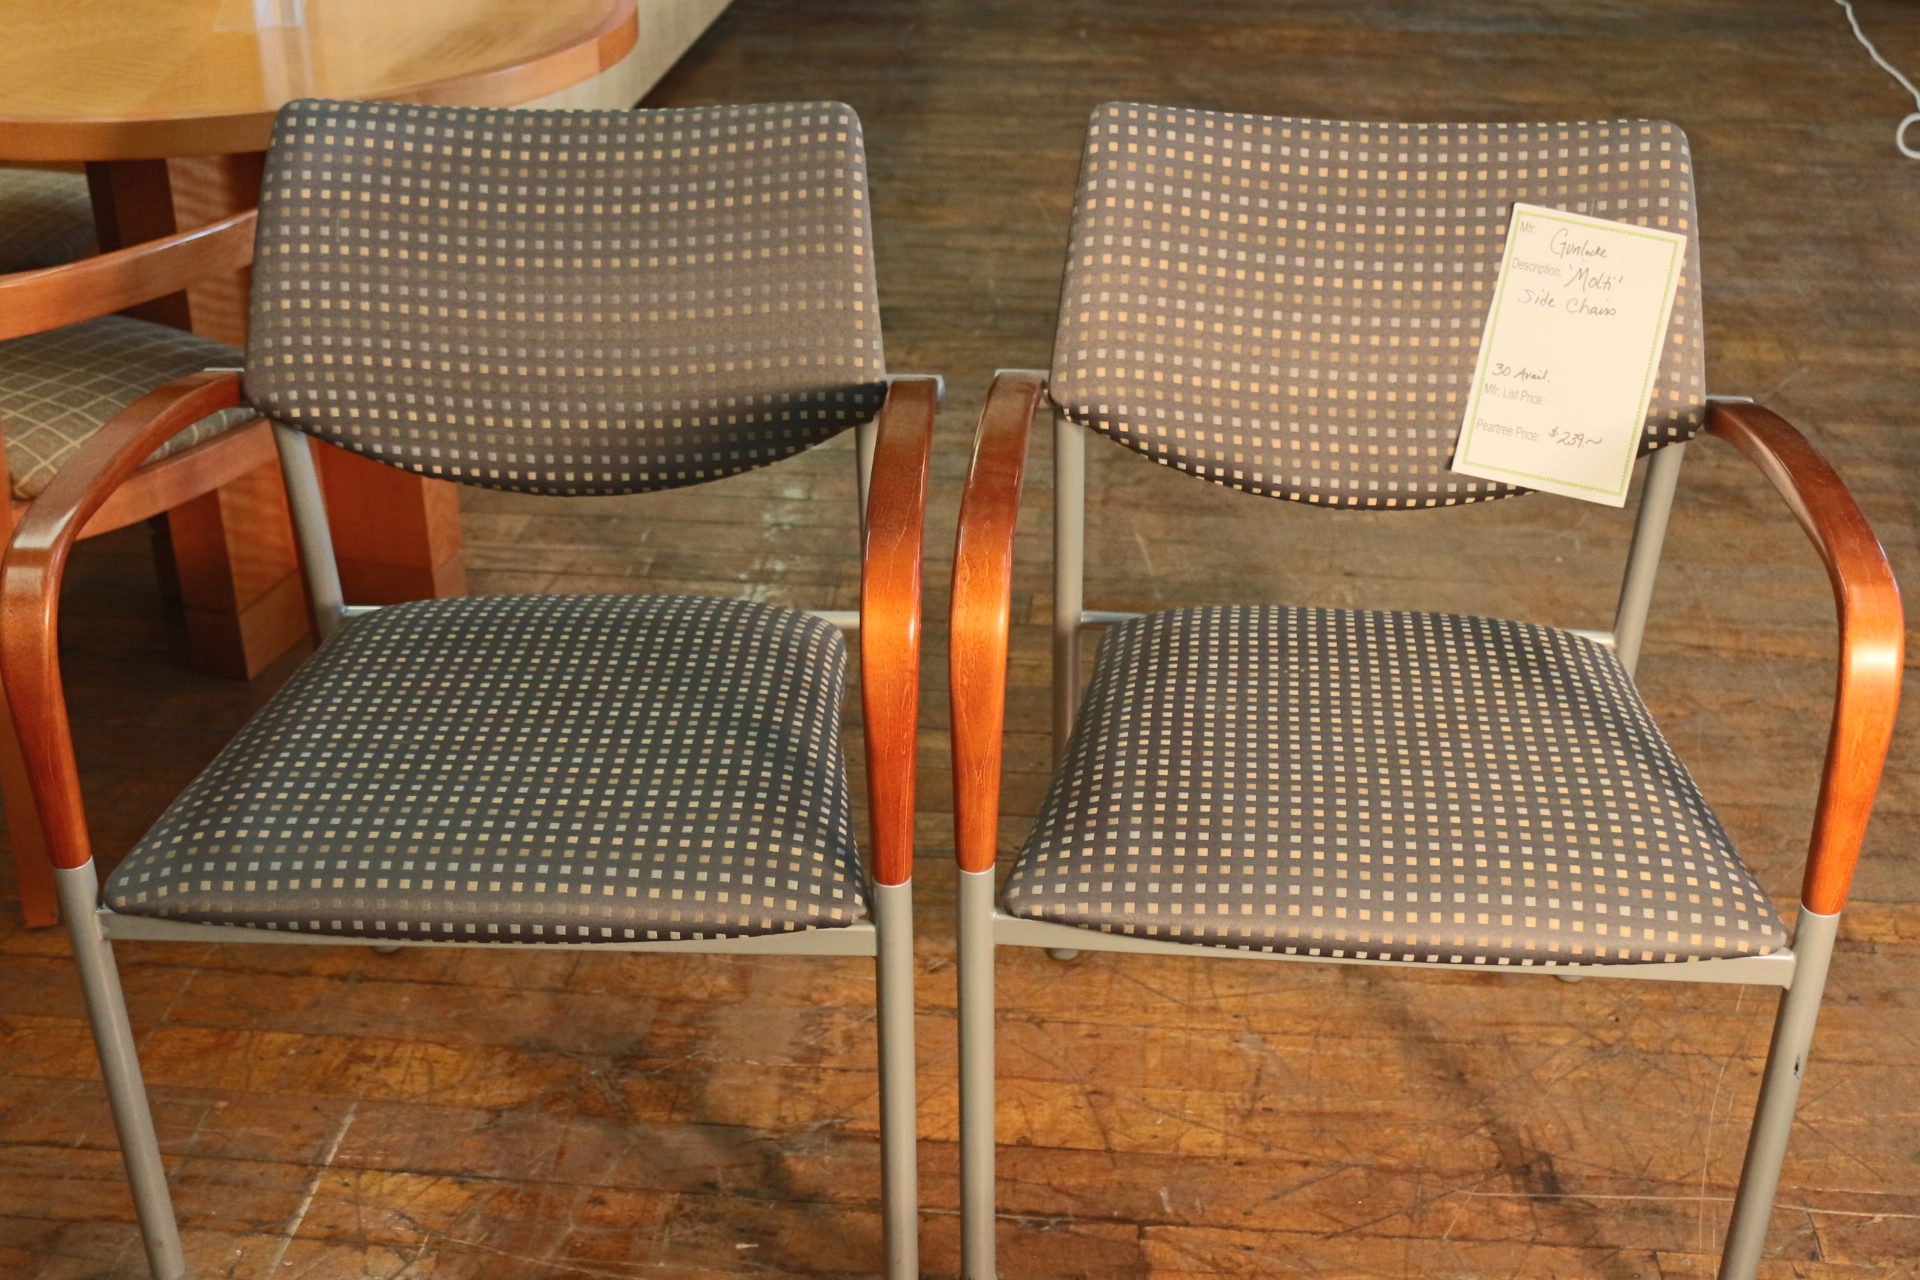 Gunlocke Molti side chairs